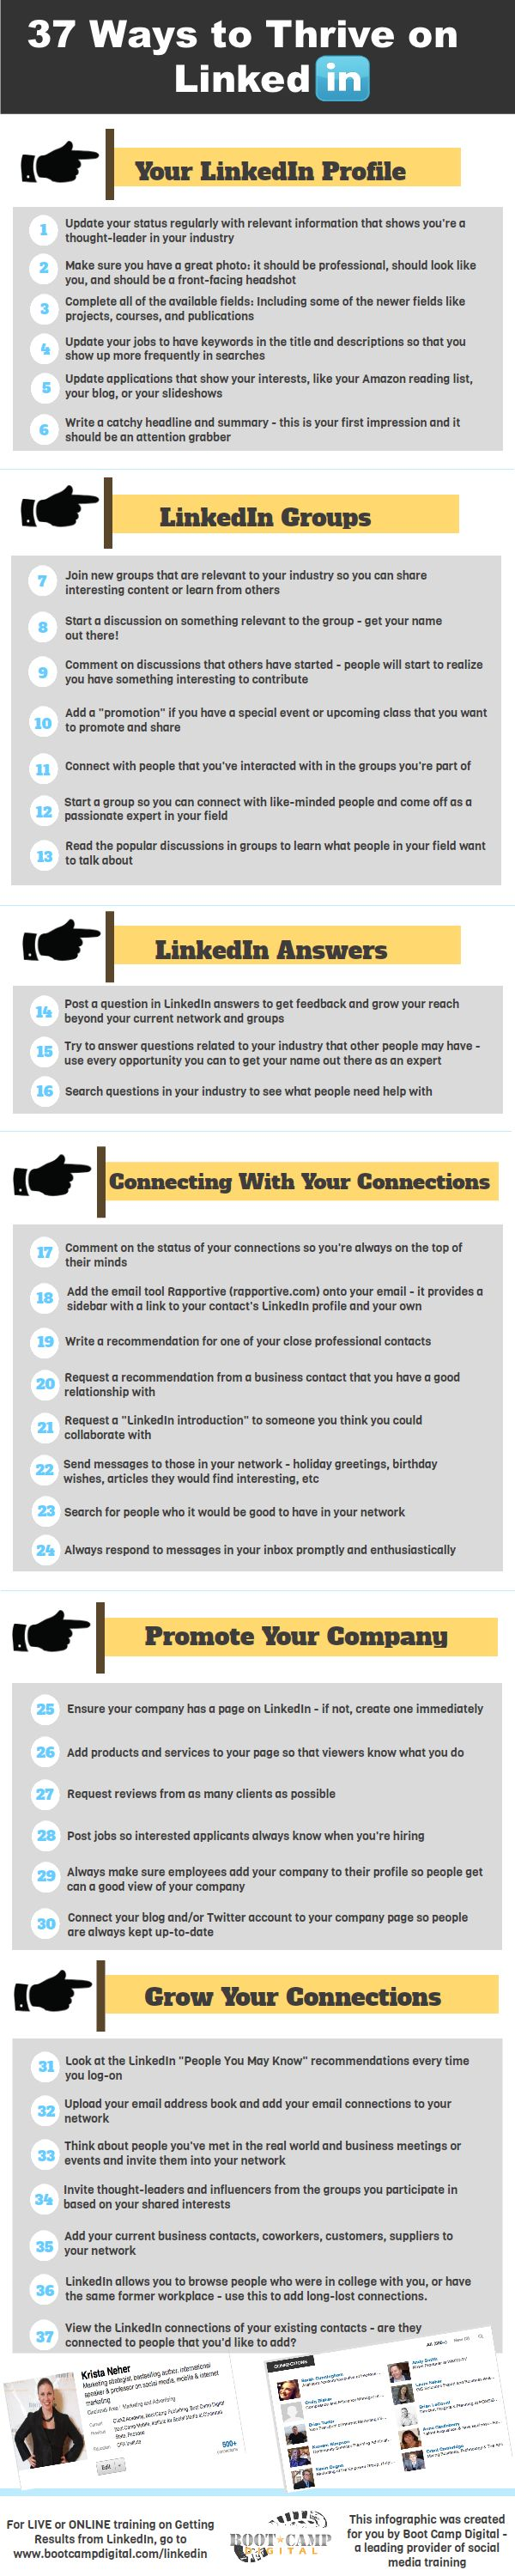 37 ways to make sure you are getting the most out of your #LinkedIn account. Great for professional development, networking, and finding job opportunities.